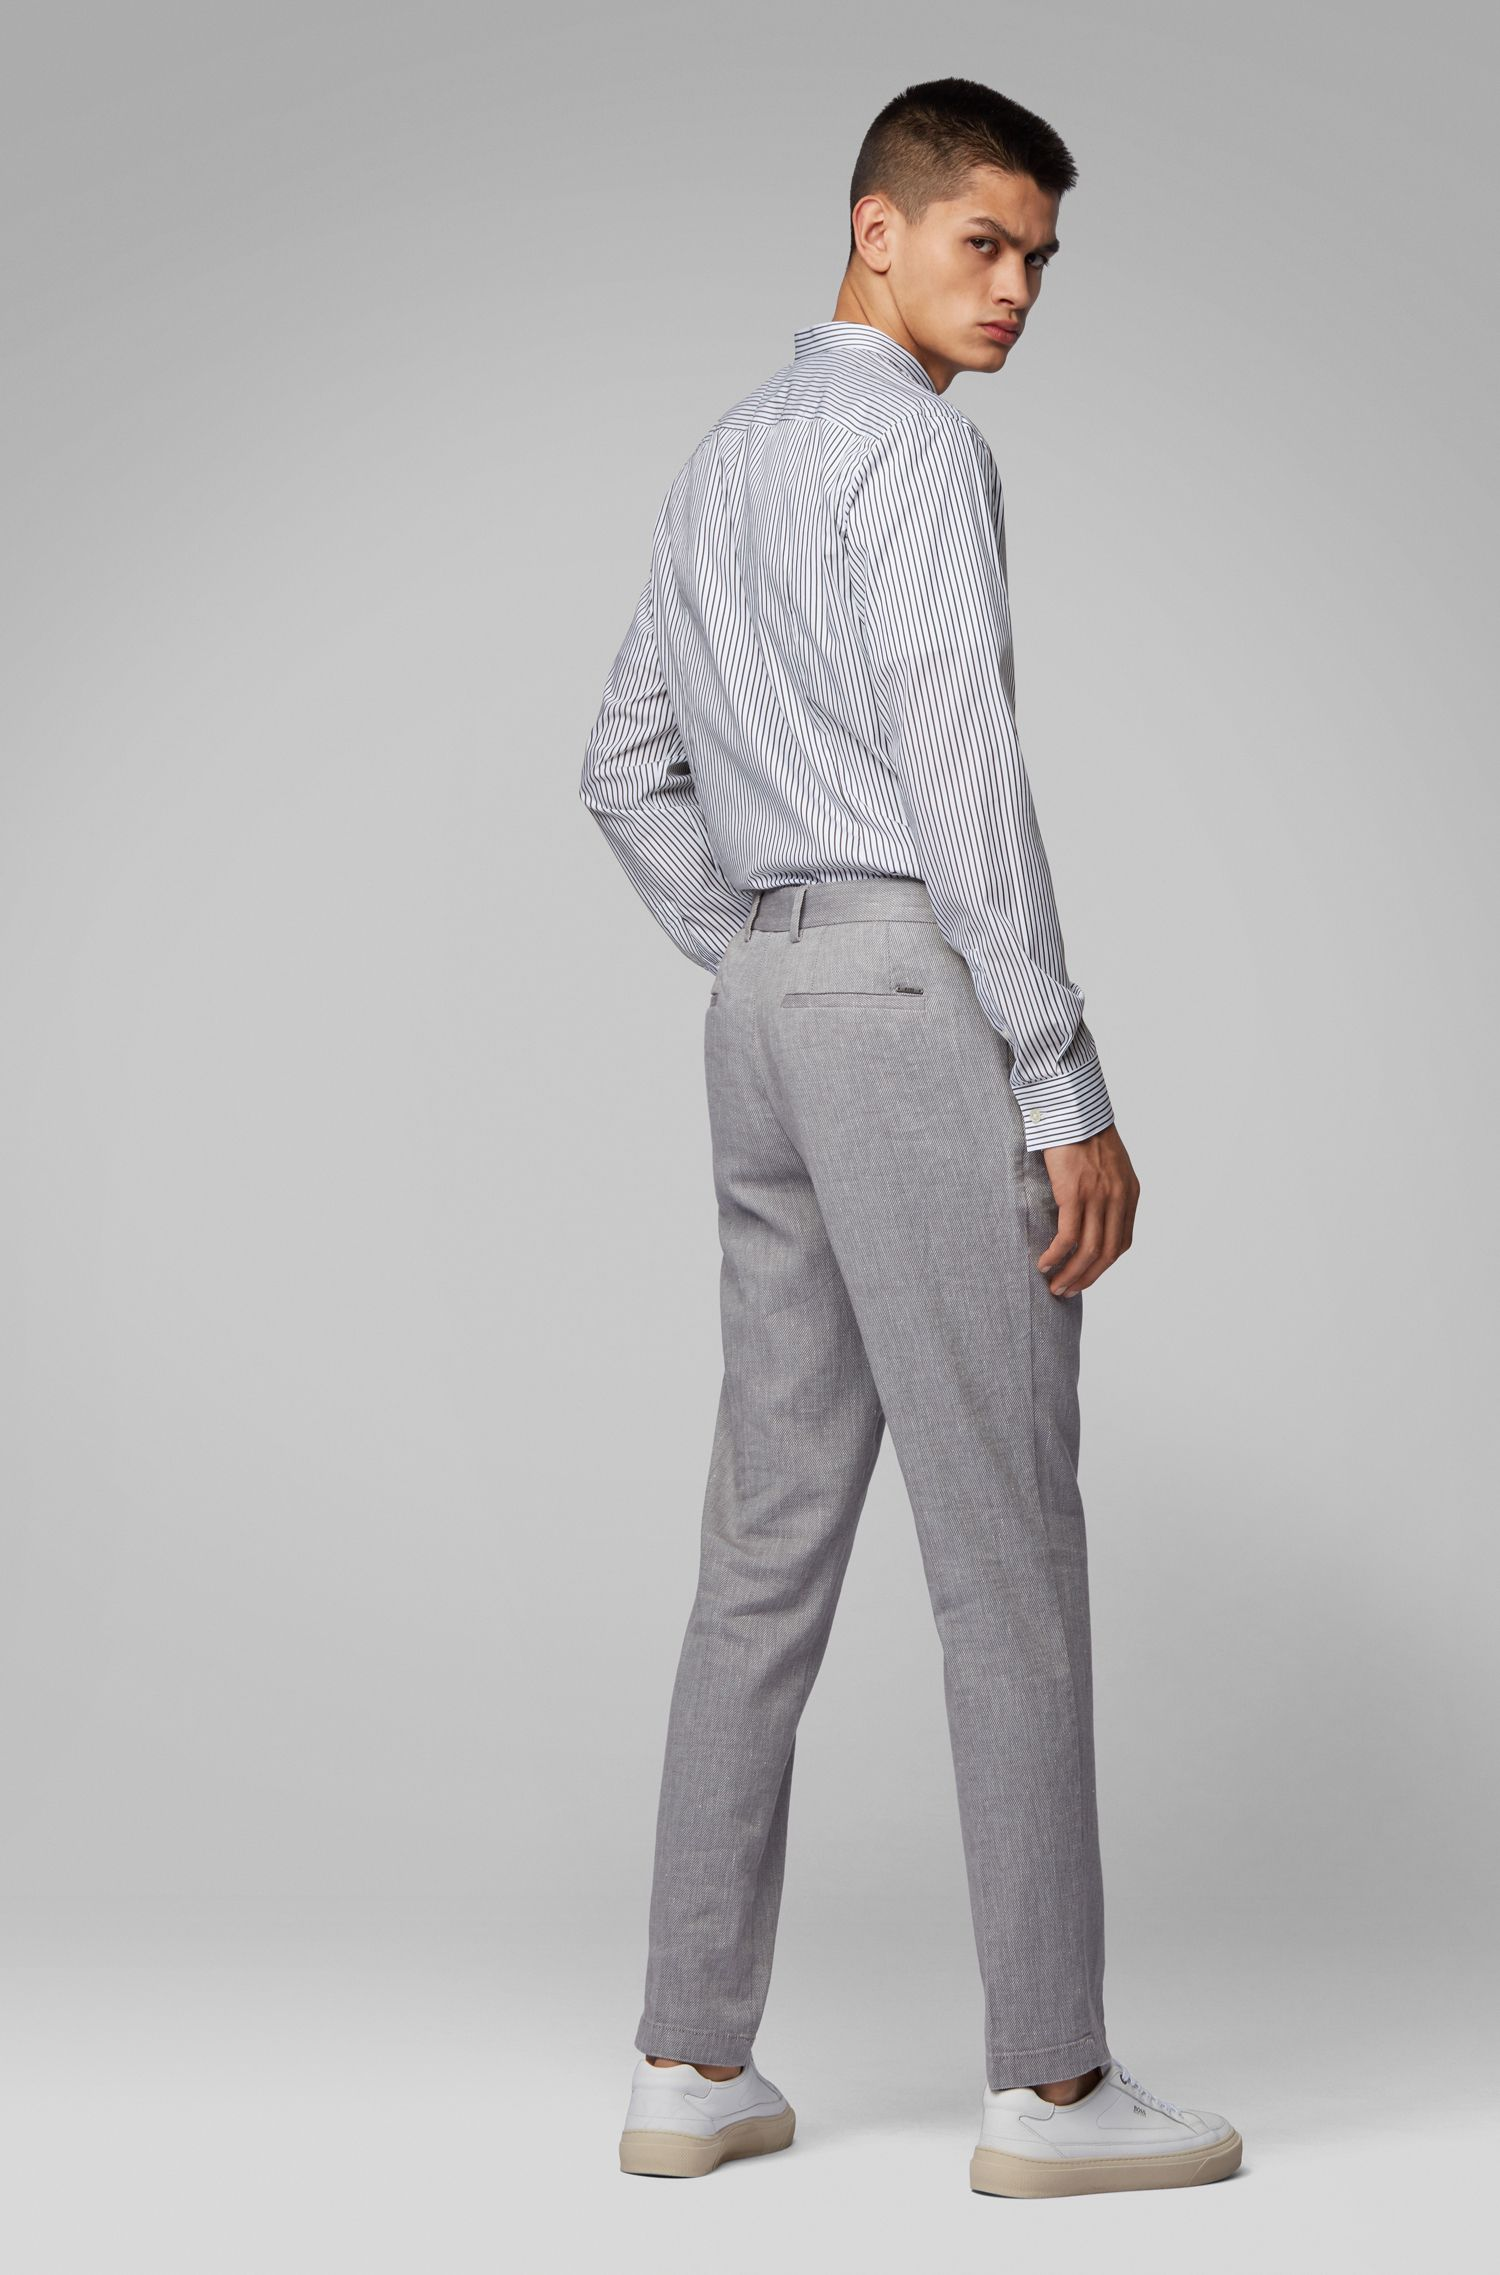 Tapered-leg chinos in a two-tone cotton blend, Silver